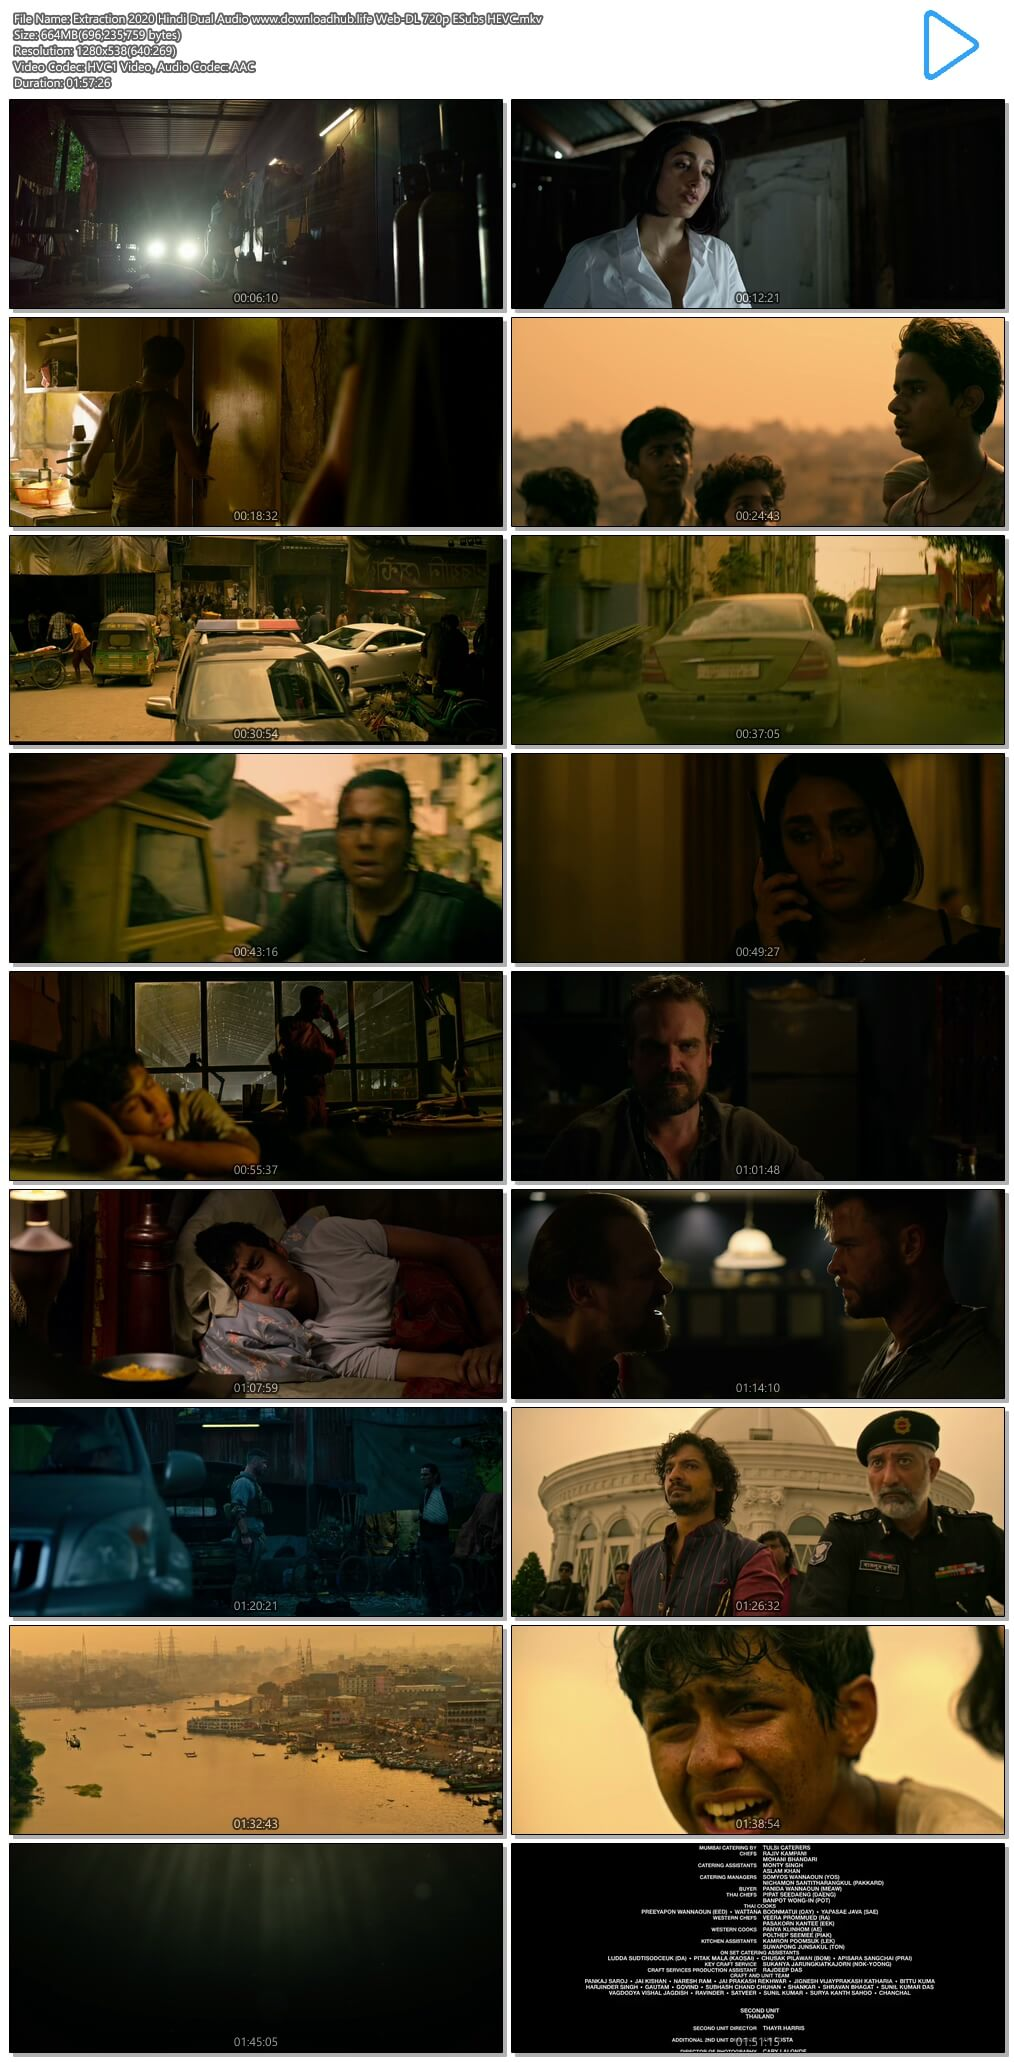 Extraction 2020 Hindi Dual Audio 650MB Web-DL 720p ESubs HEVC